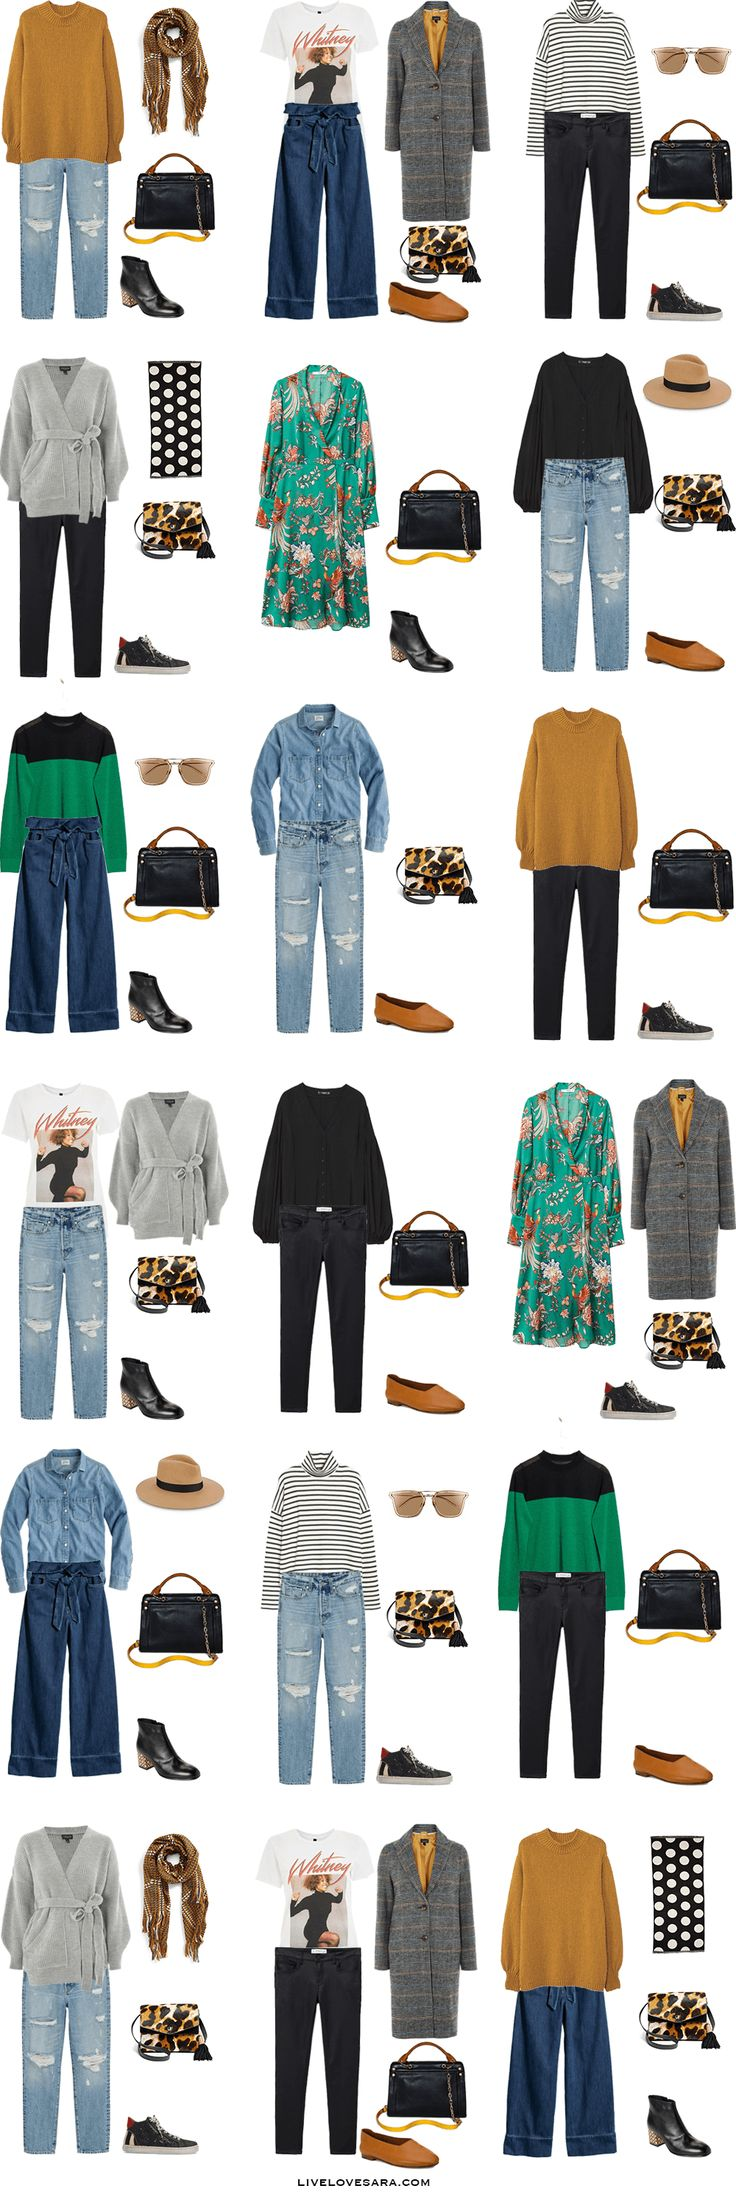 Travel Capsule Wardrobe: 10 days in San Francisco in March. What to Wear: Outfit Options. Spring 2017